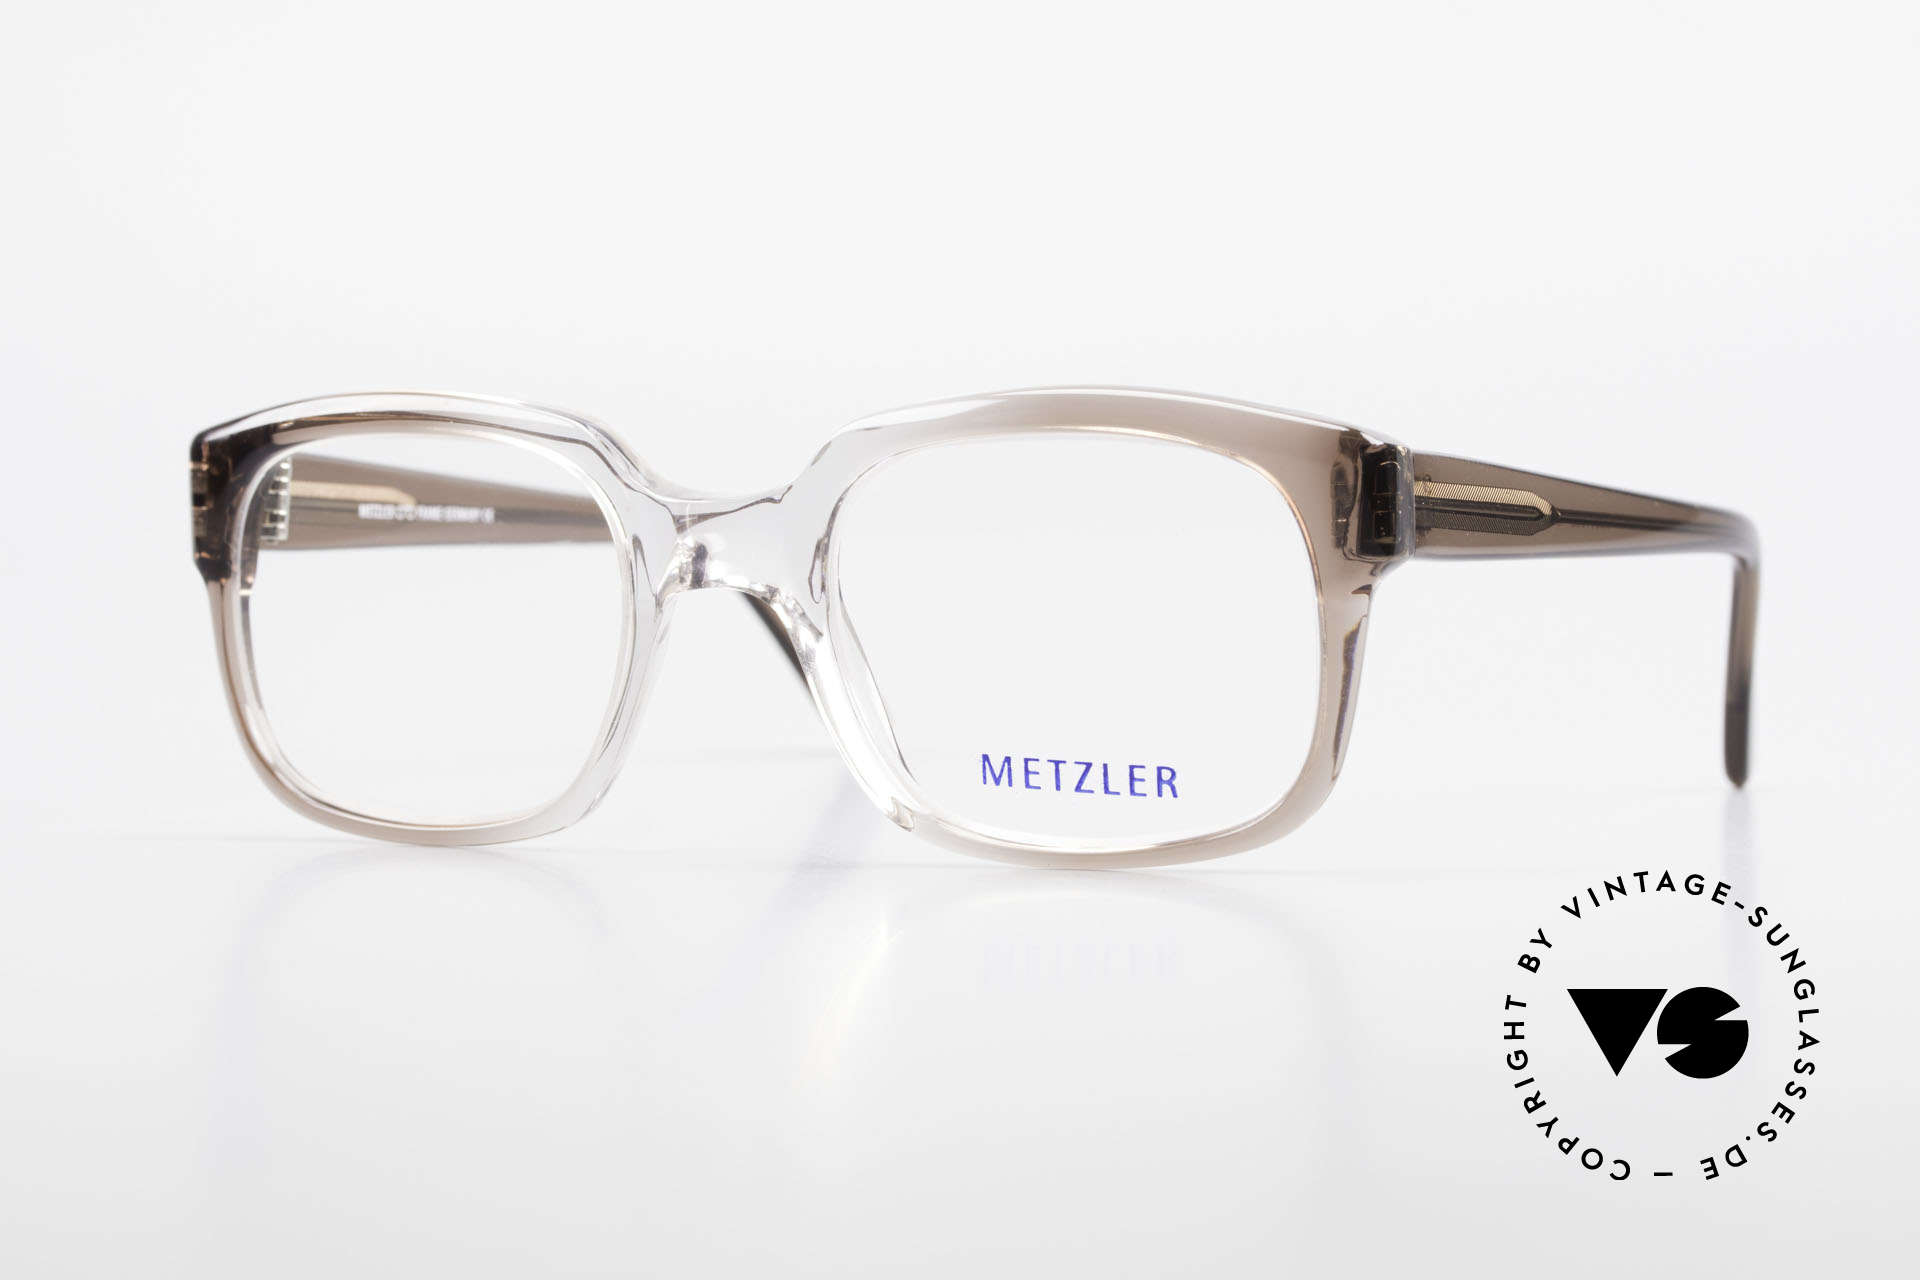 Metzler 7665 Small 80's Old School Eyeglasses, Metzler vintage eyeglasses, 7665, size 52/22, 140, Made for Men